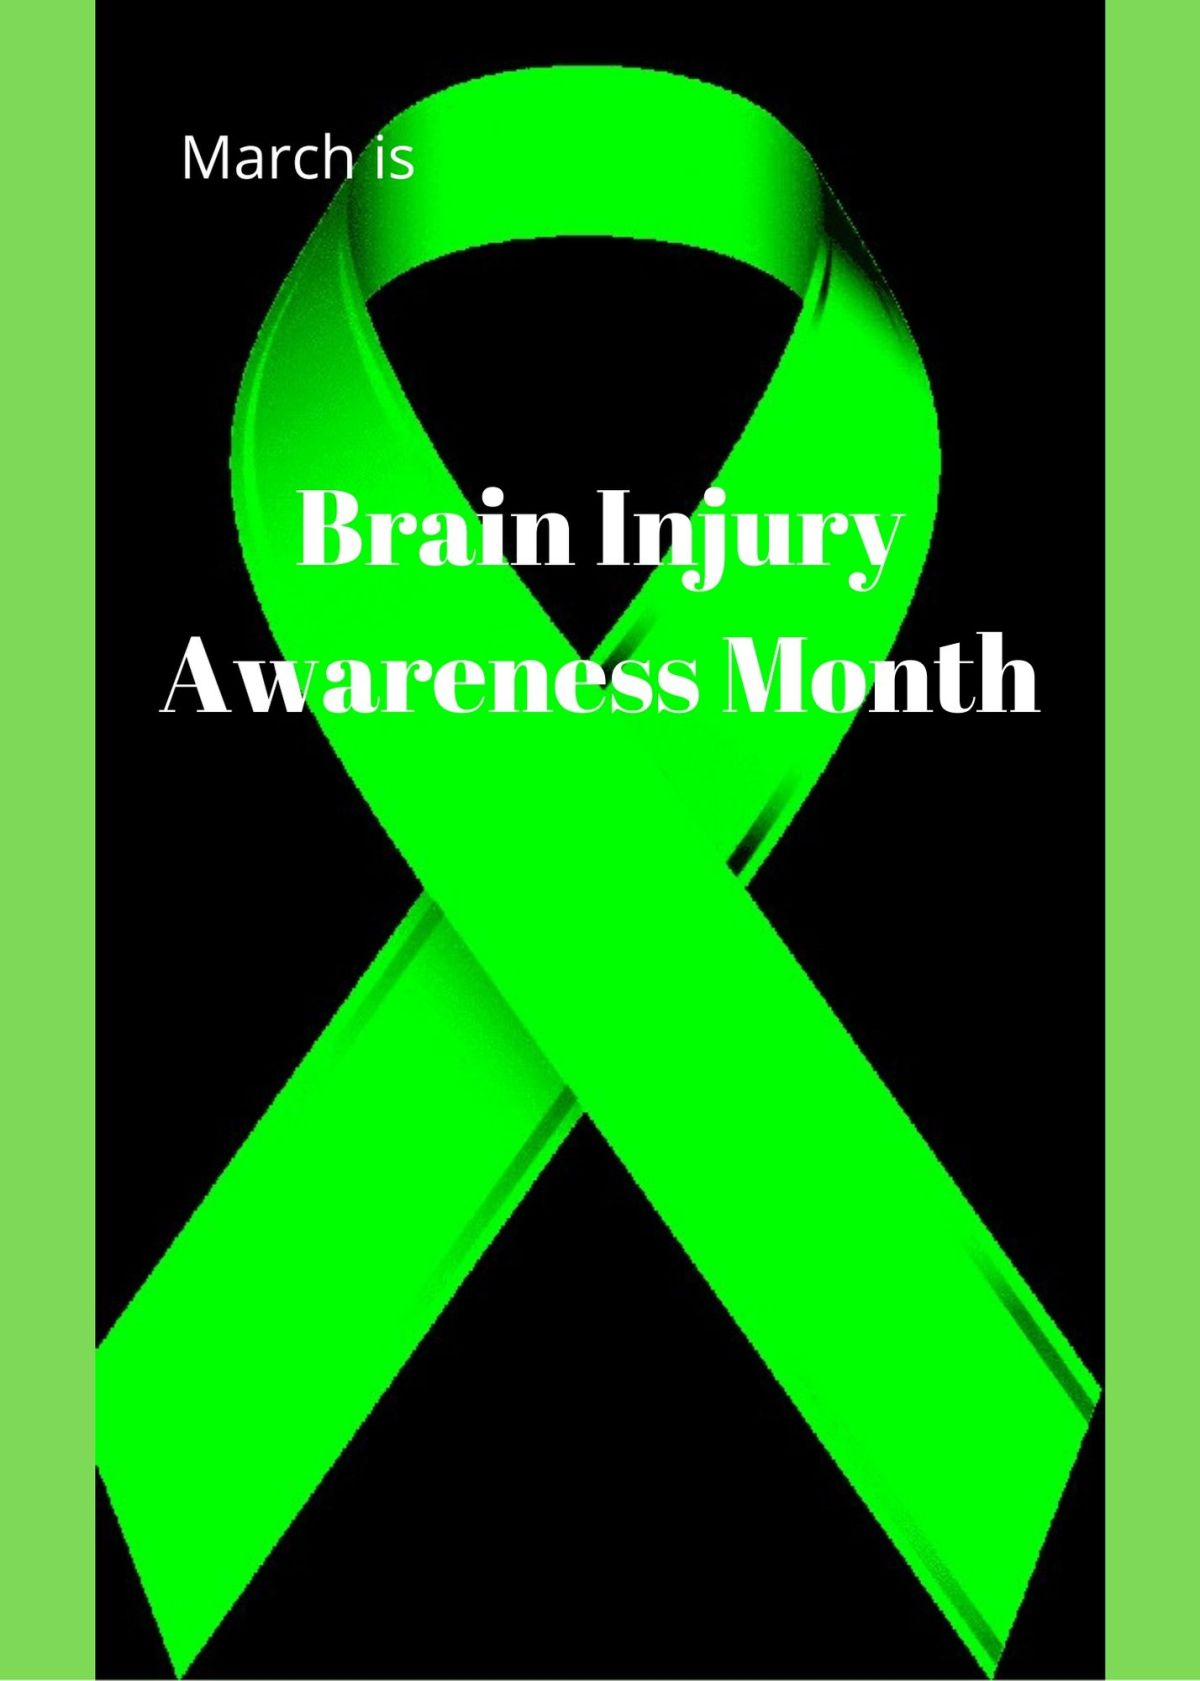 March: Brain Injury Awareness Month